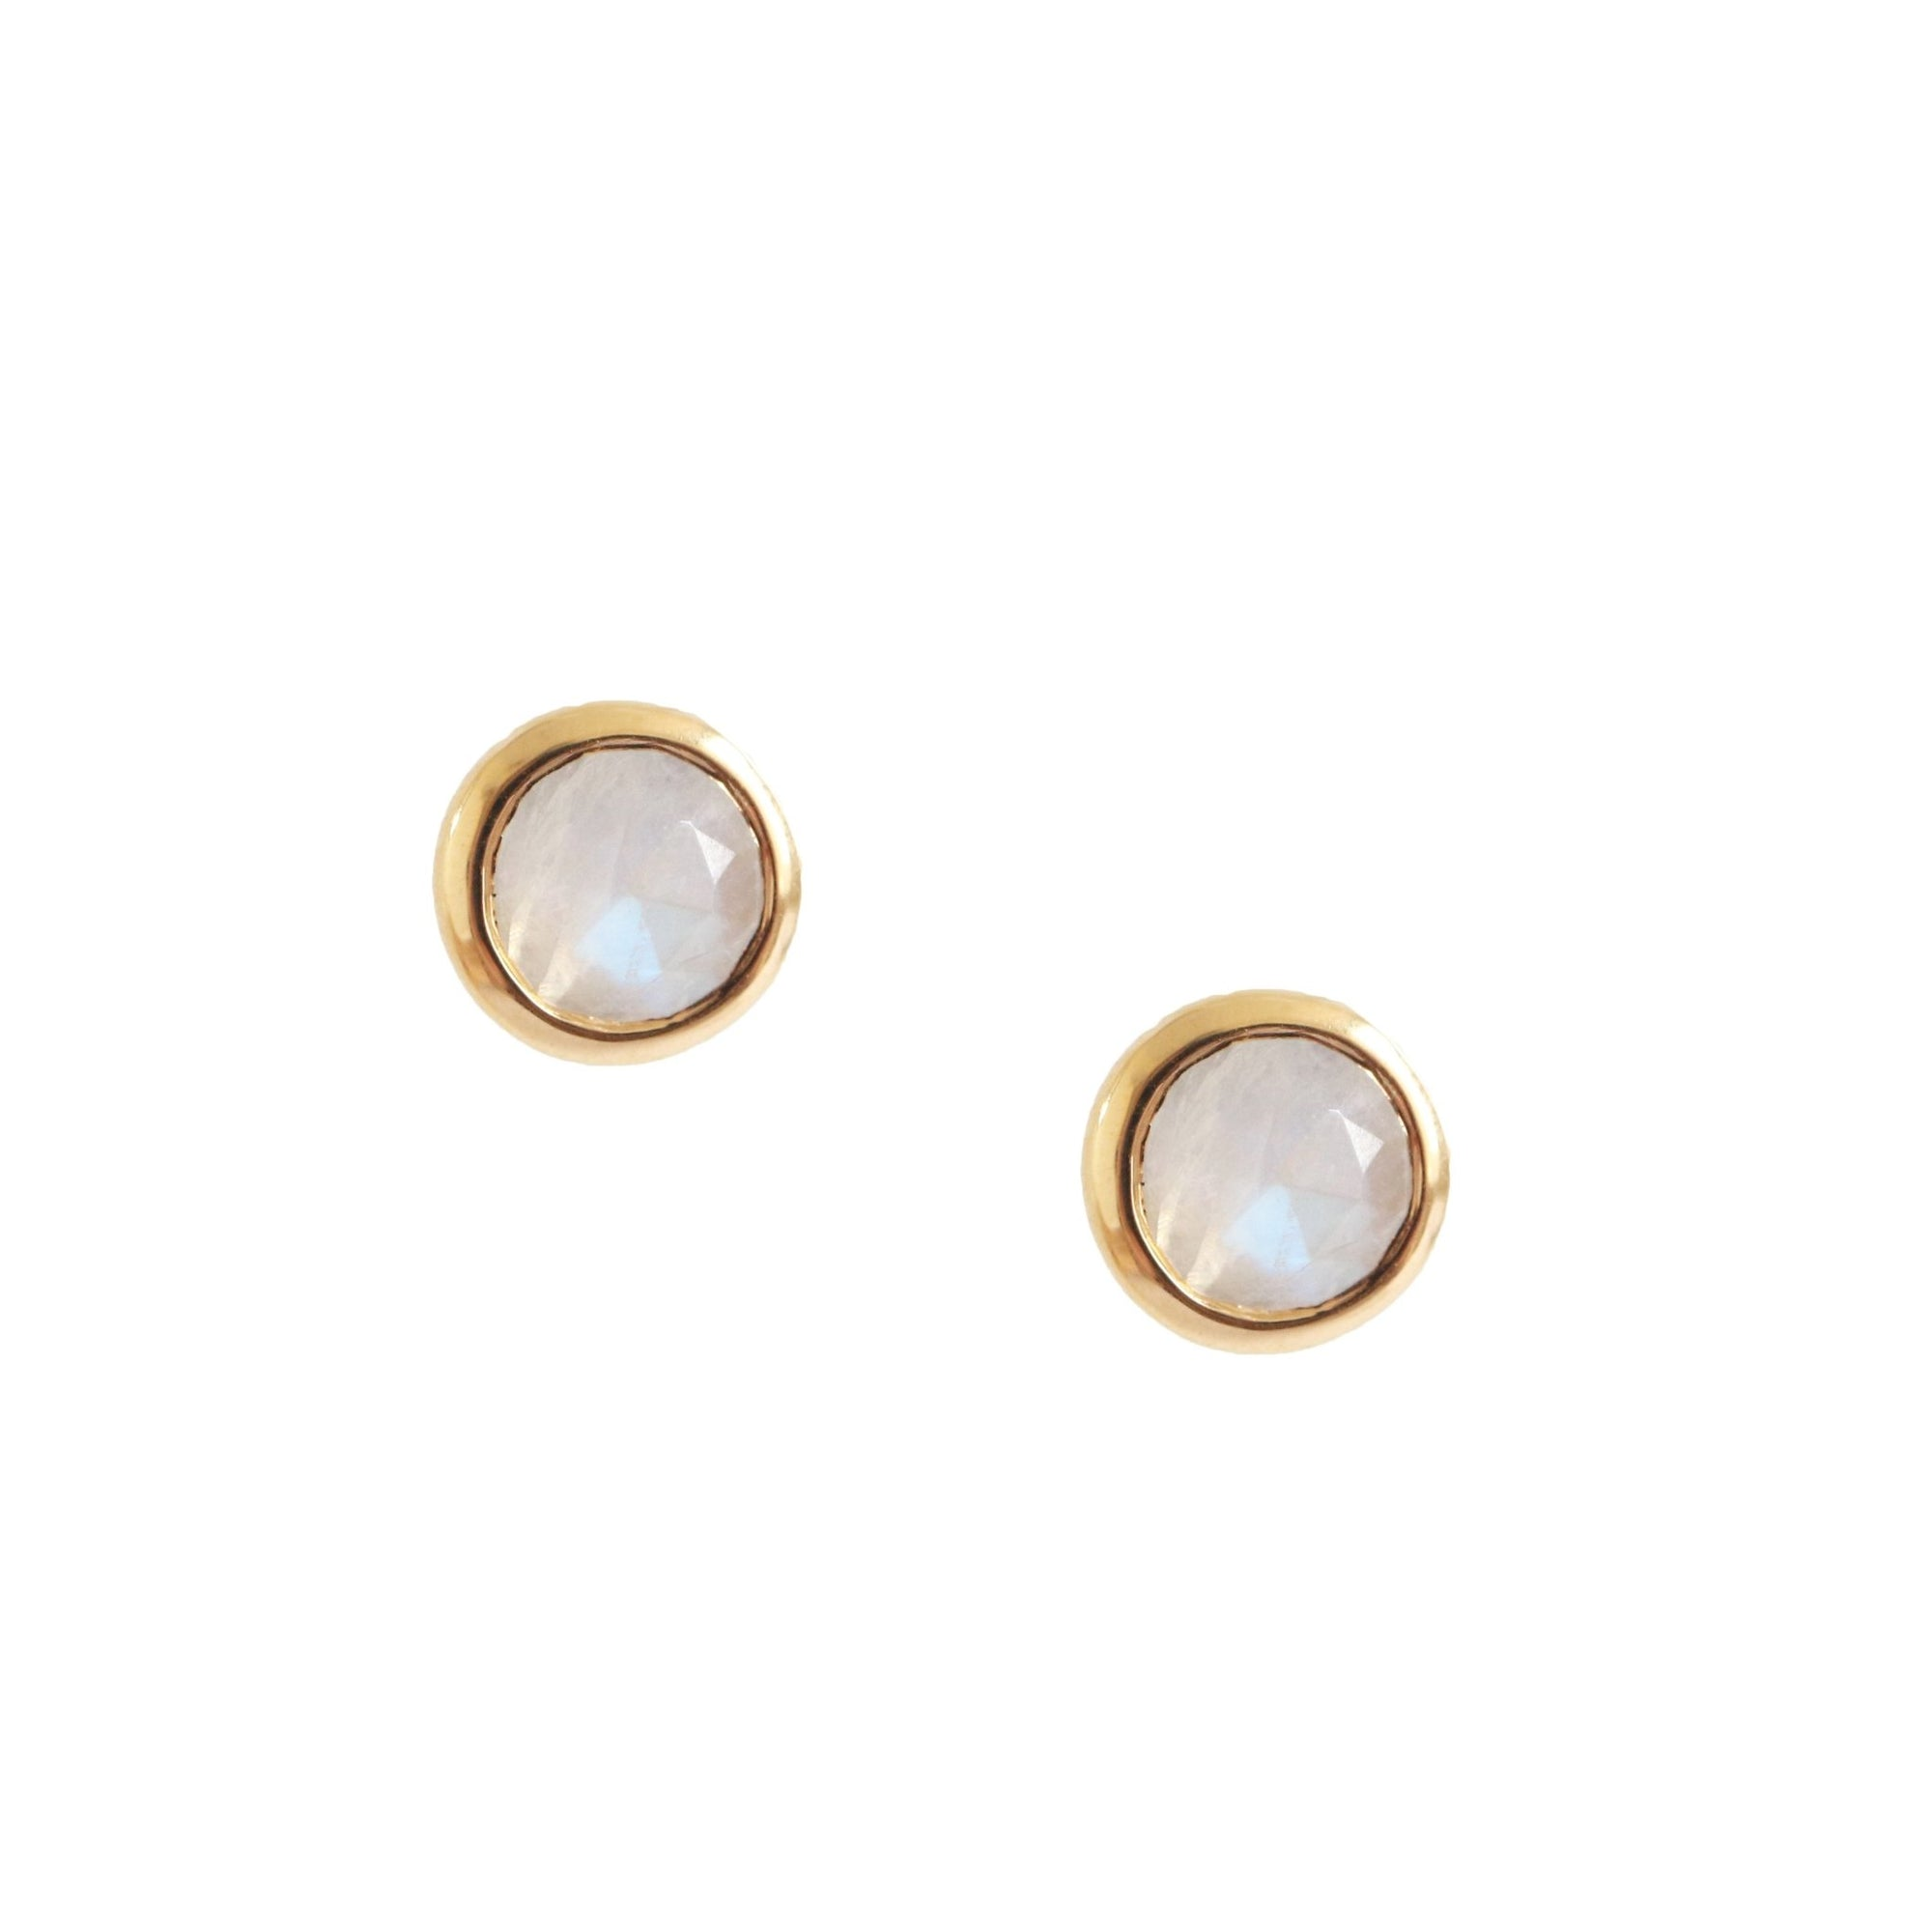 DAINTY LEGACY STUDS - RAINBOW MOONSTONE & GOLD - SO PRETTY CARA COTTER